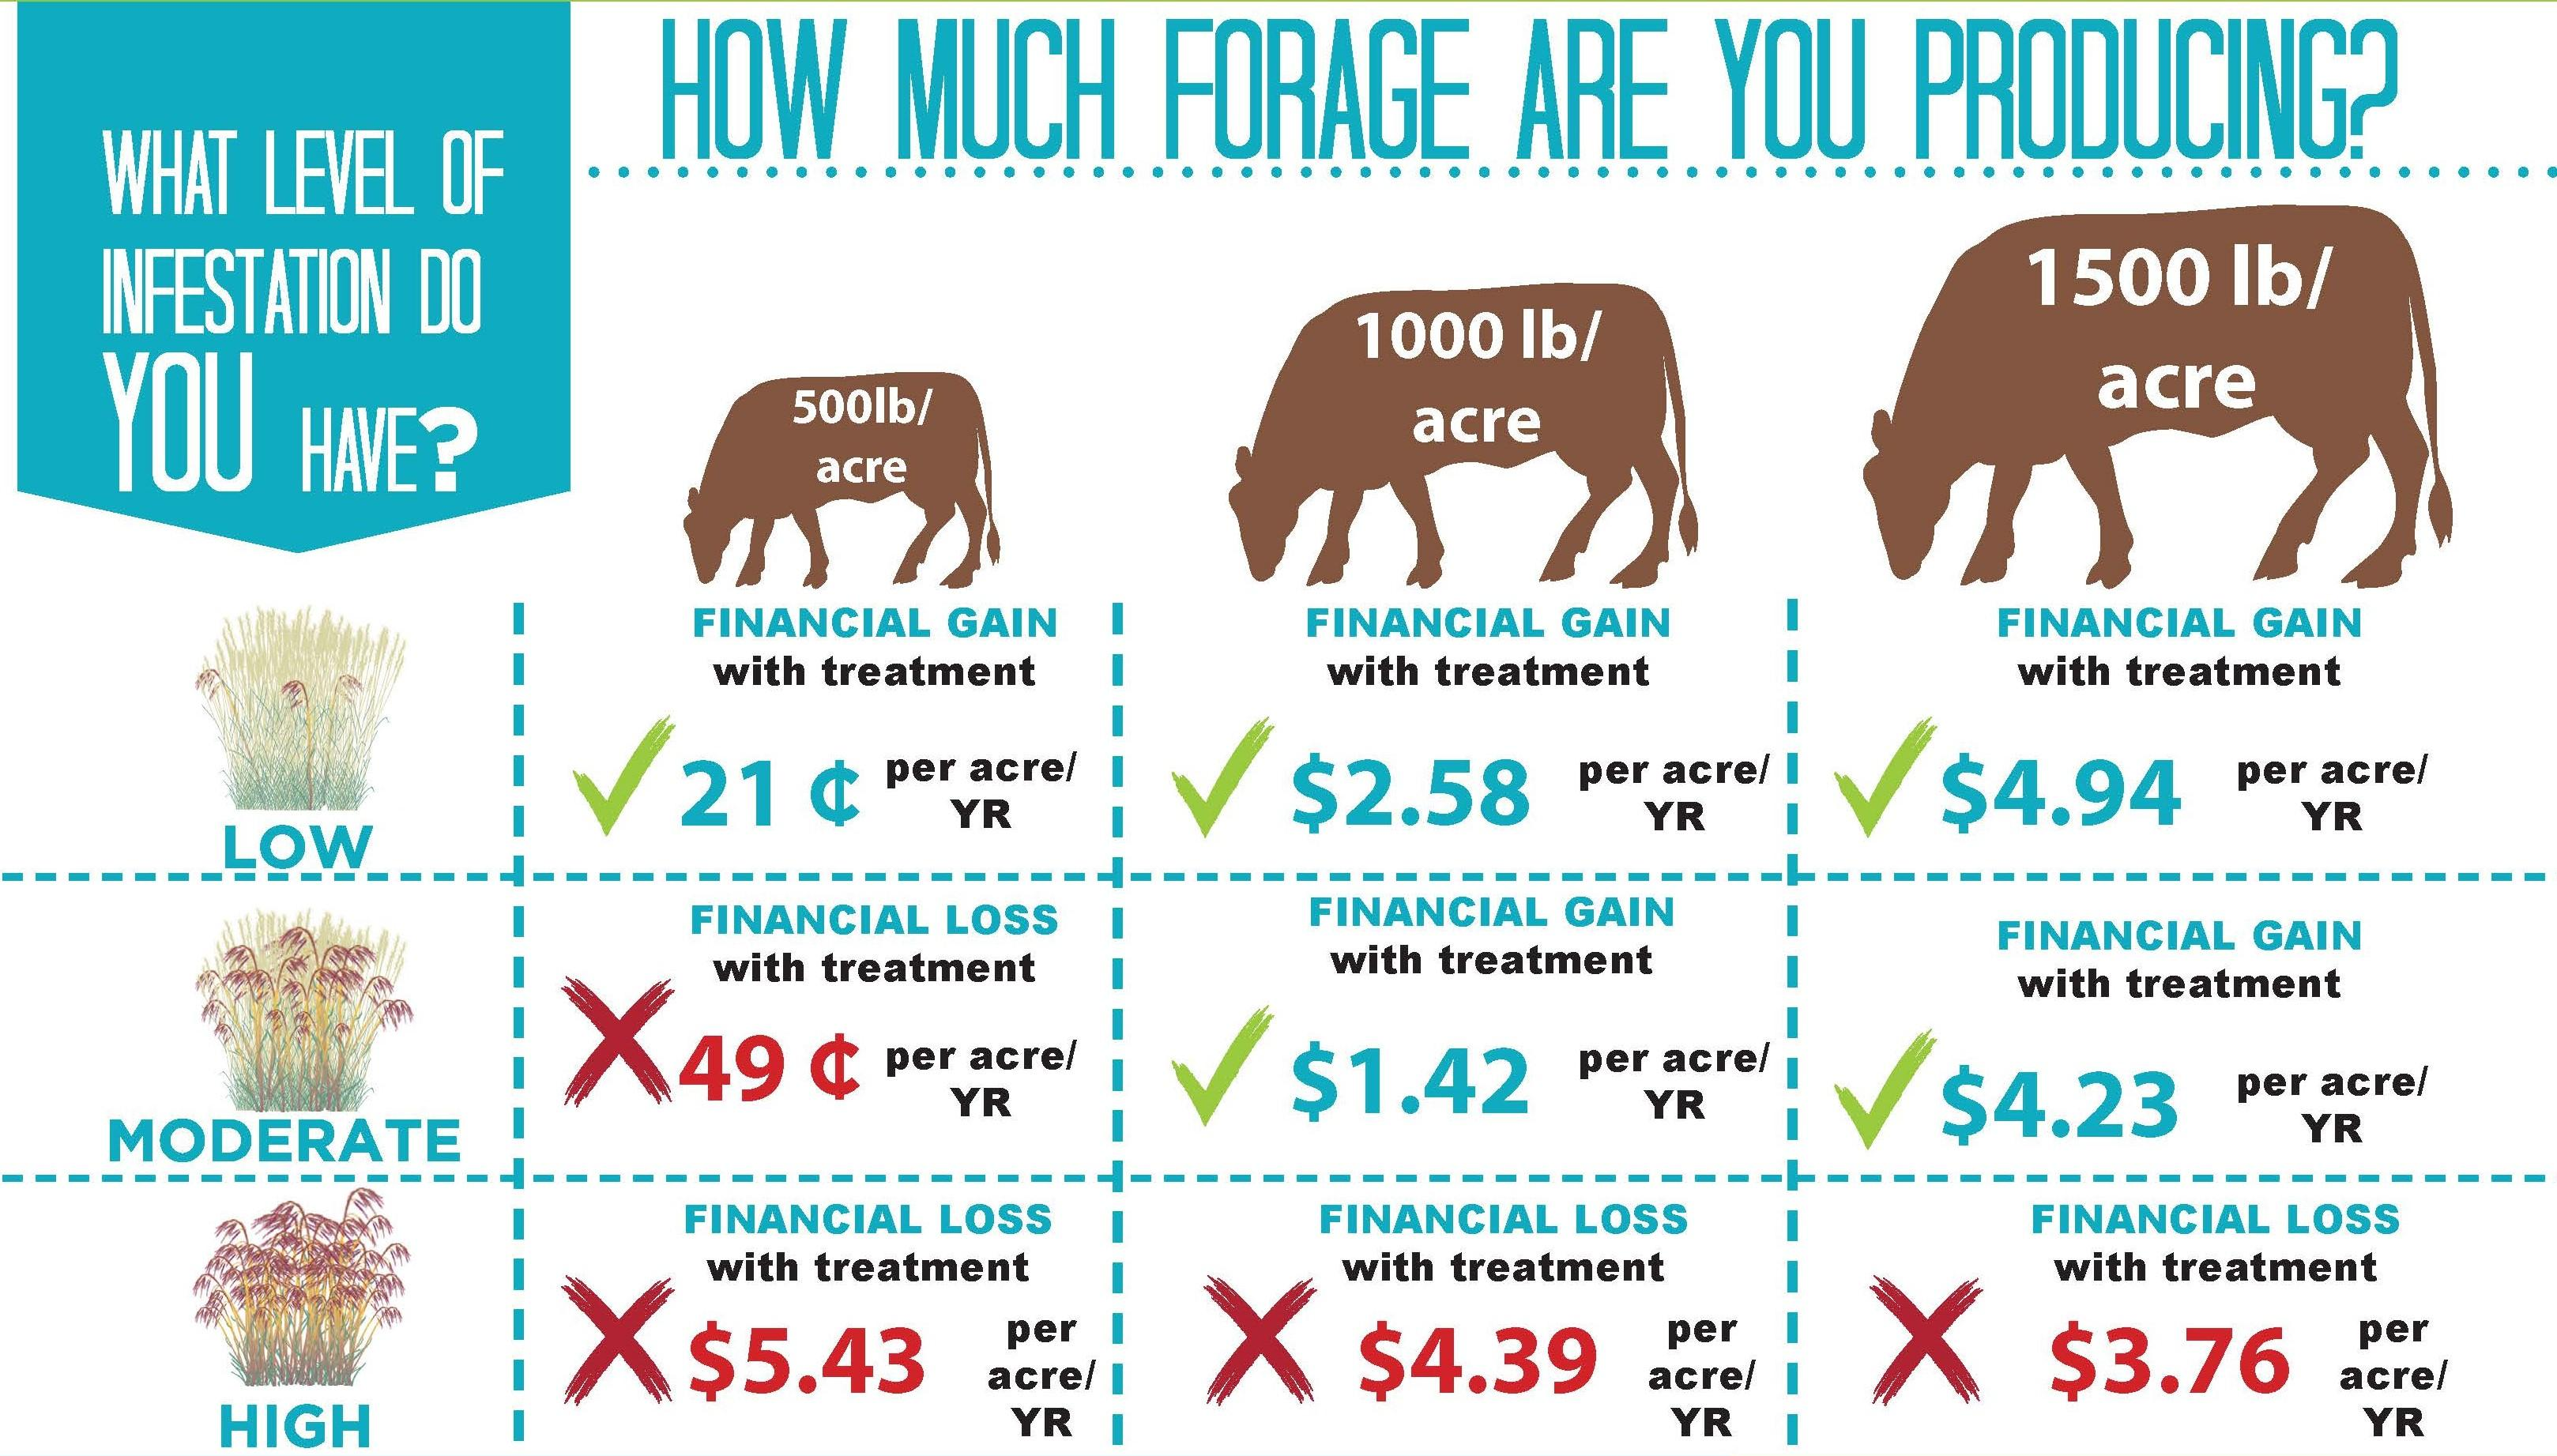 Knowing when to treat and the costs and benefits involved is key to making decisions for your land.